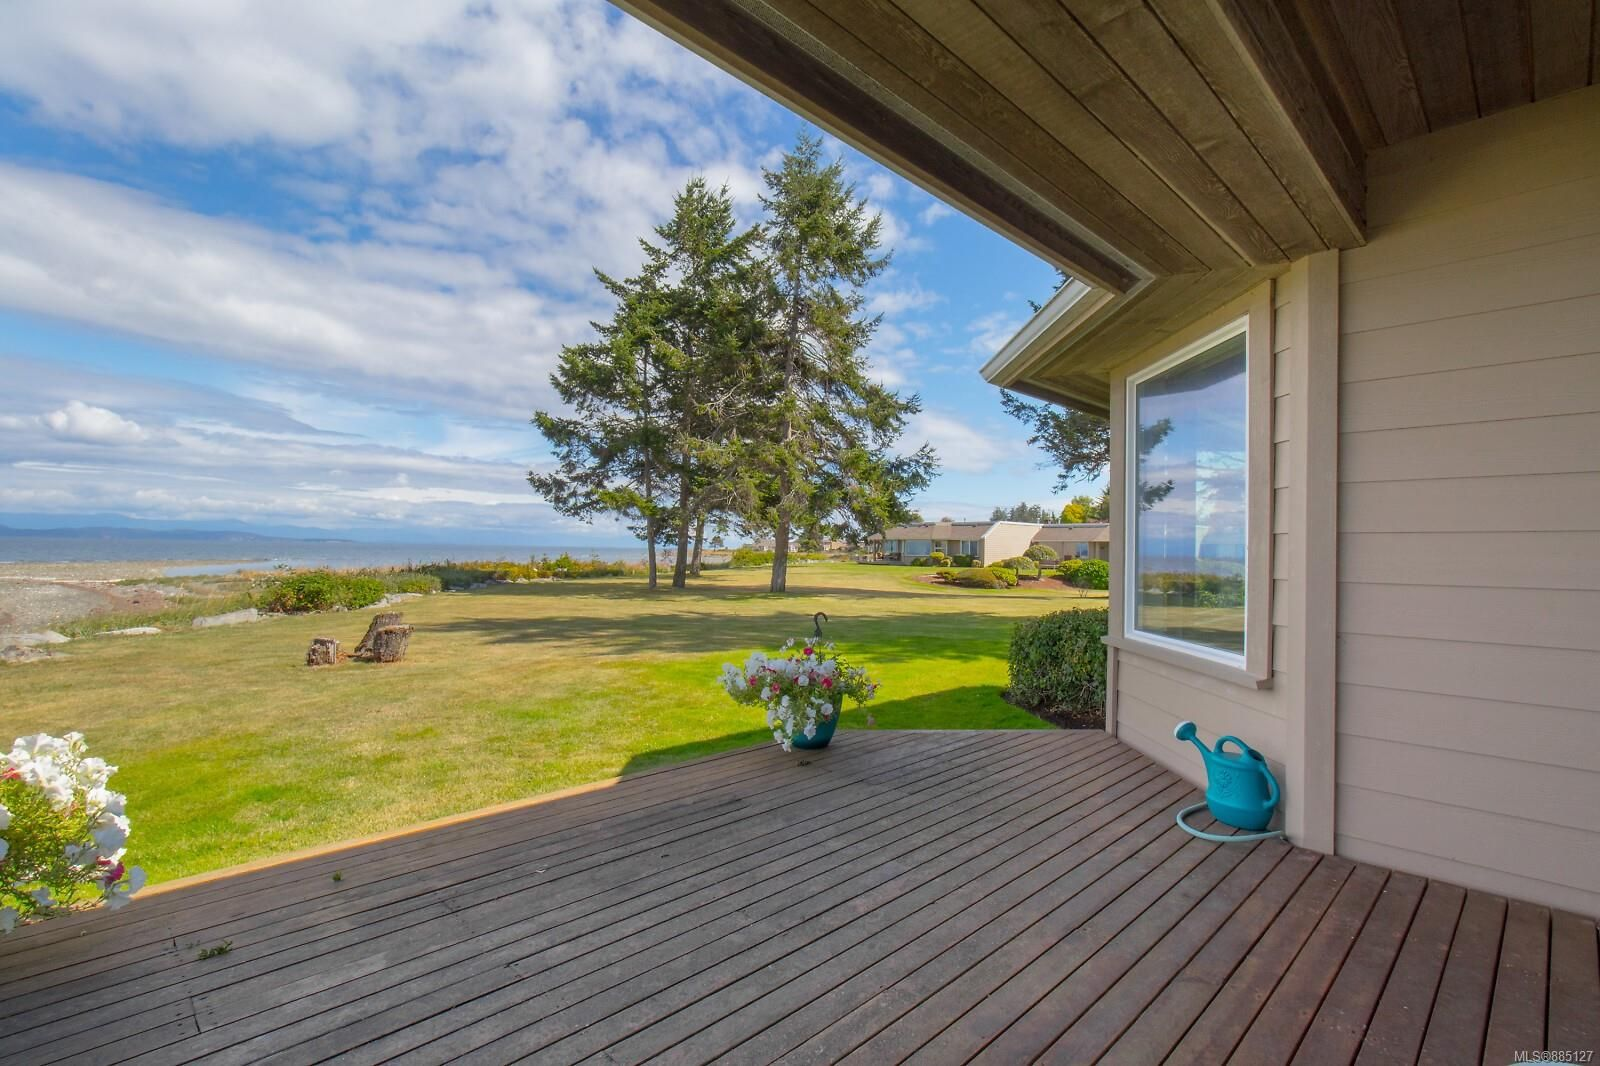 Photo 12: Photos: 26 529 Johnstone Rd in : PQ French Creek Row/Townhouse for sale (Parksville/Qualicum)  : MLS®# 885127